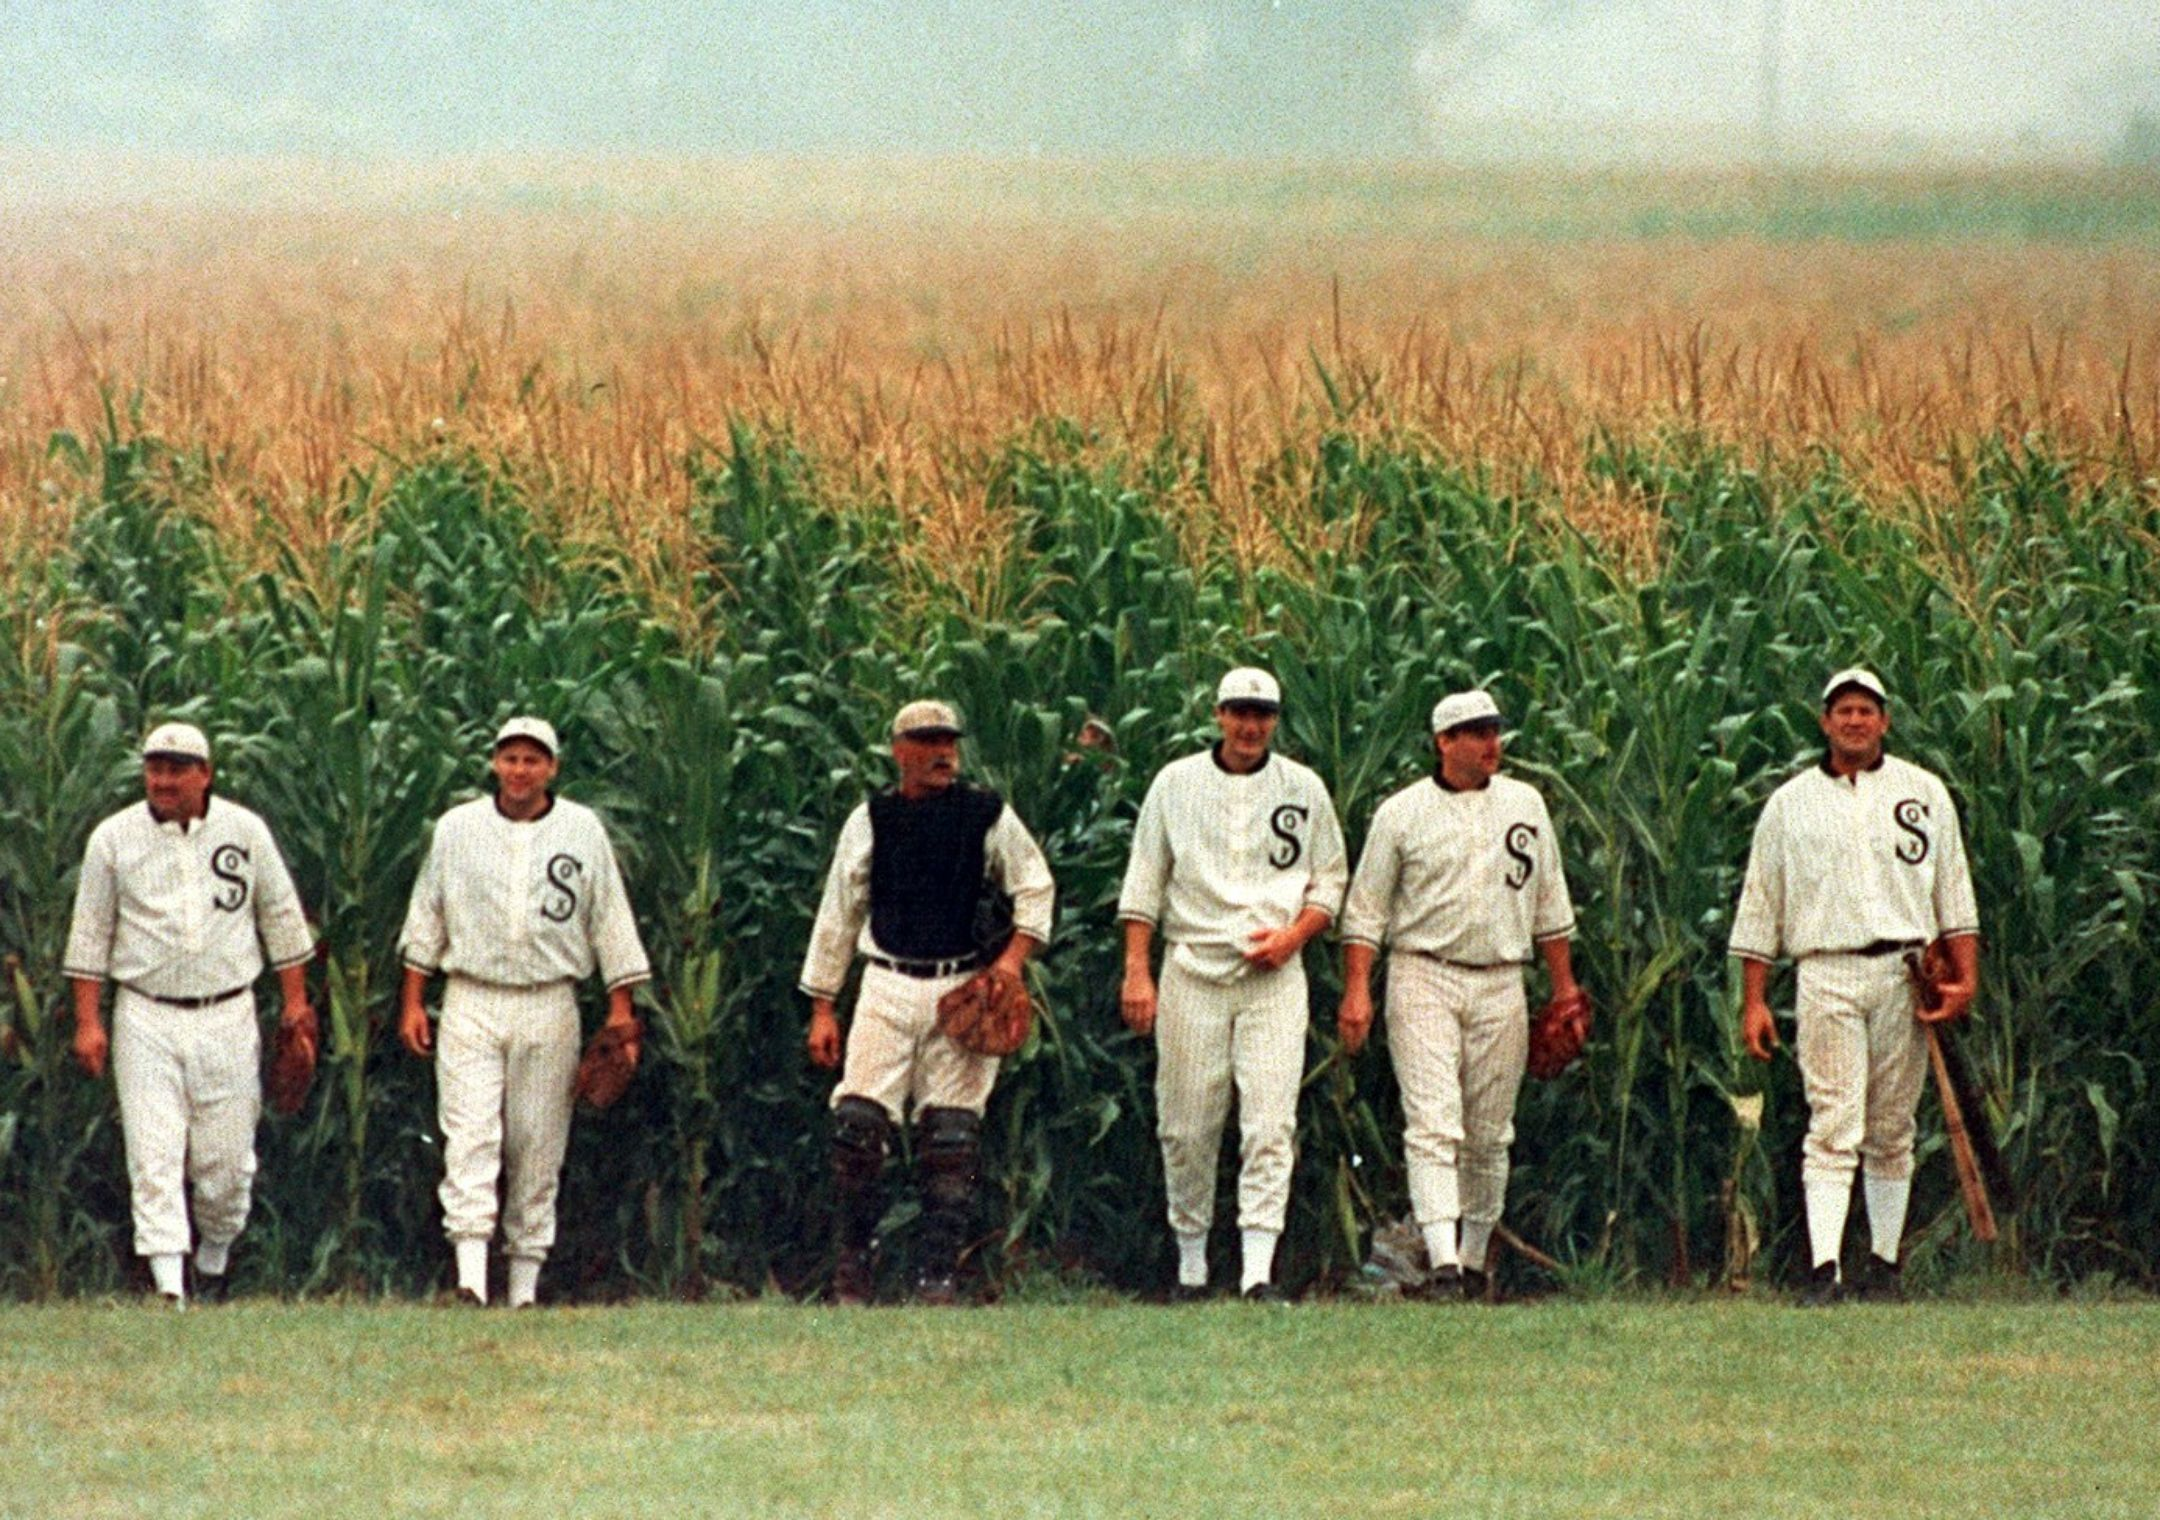 From the inspirational Field of Dreams movie from the late '80s